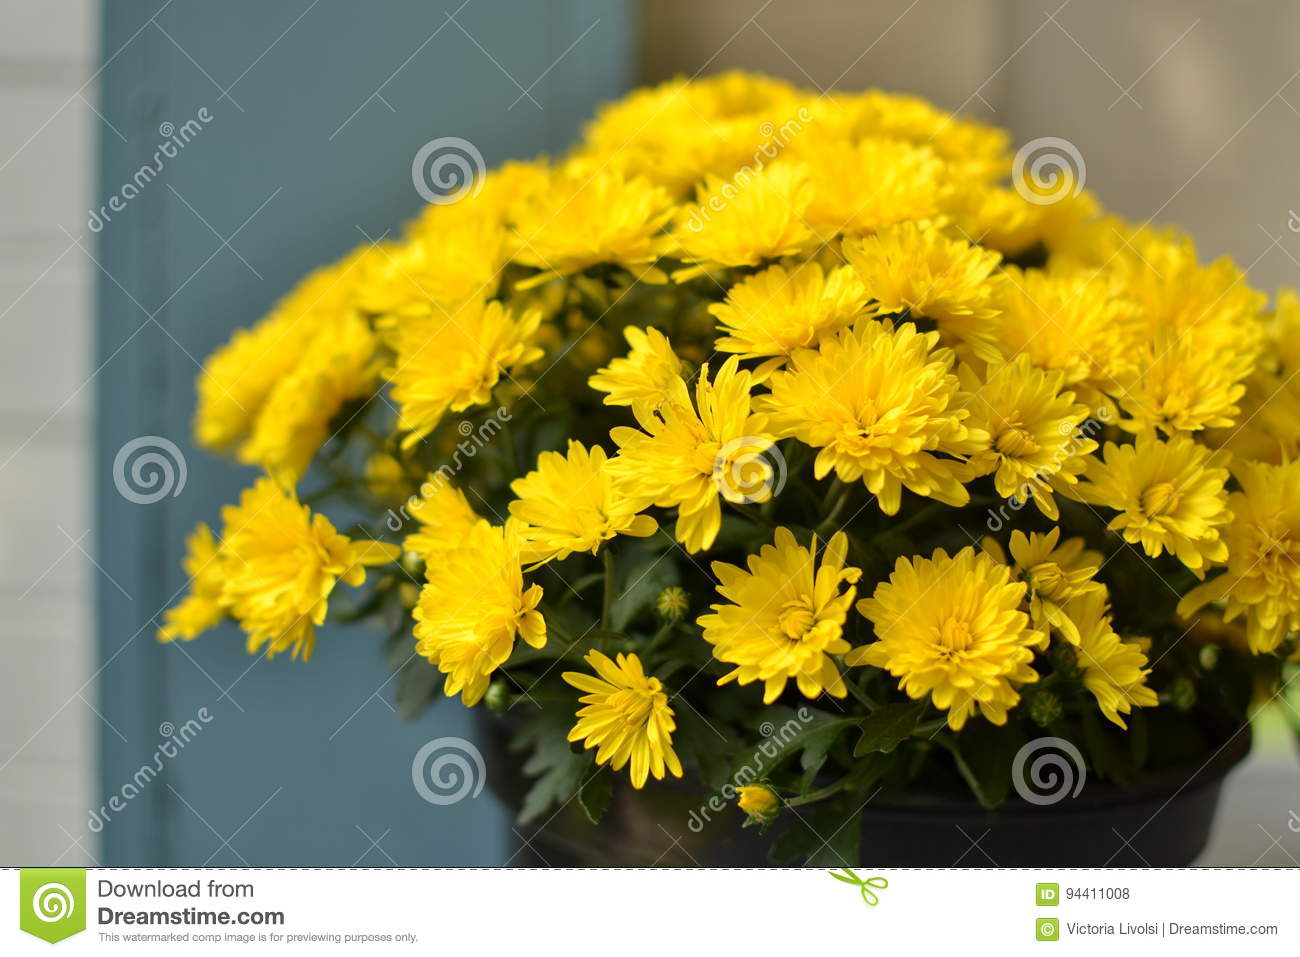 Potted plant containing yellow flowers and blue background stock potted plant containing yellow flowers and blue background mightylinksfo